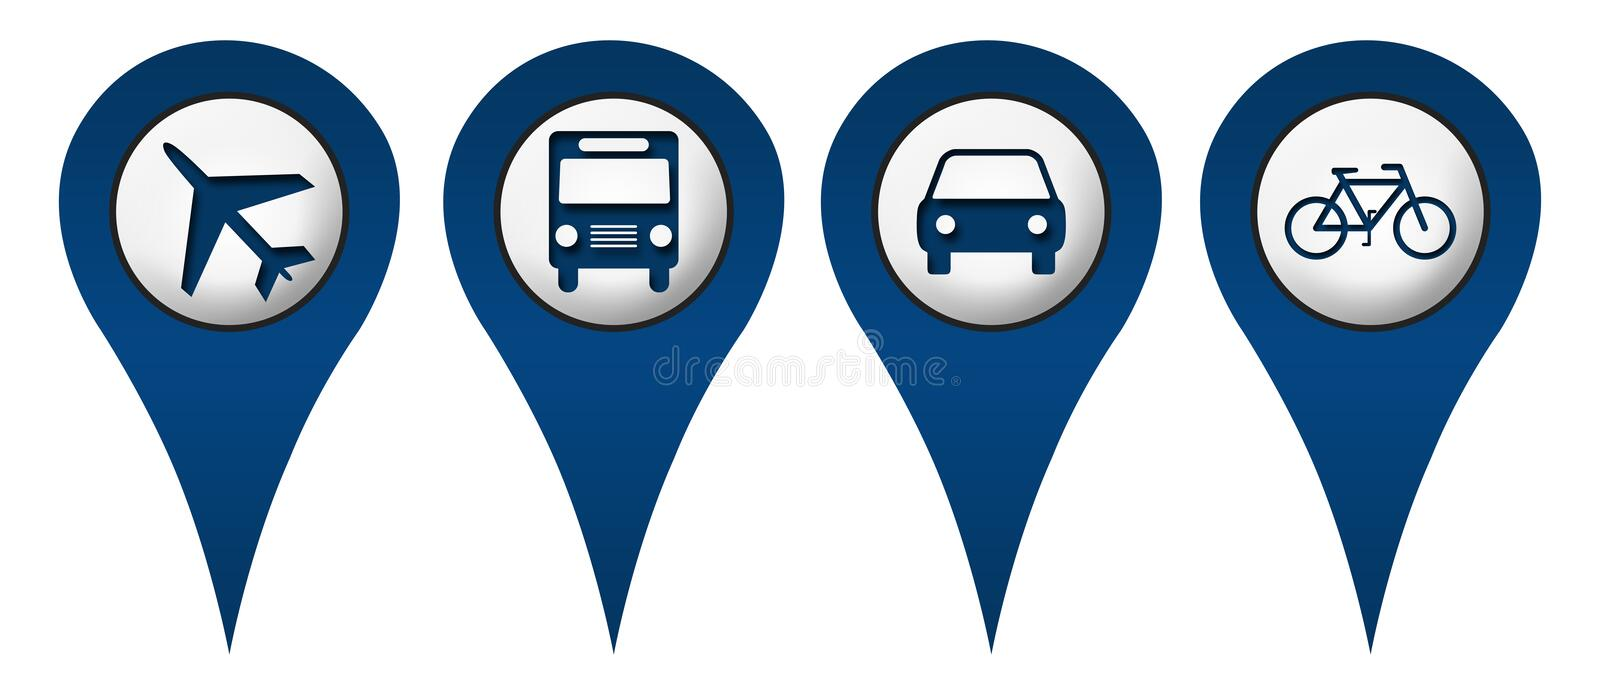 Download Cycle Plane Bus Car Location Icons Stock Illustration - Image: 36292225